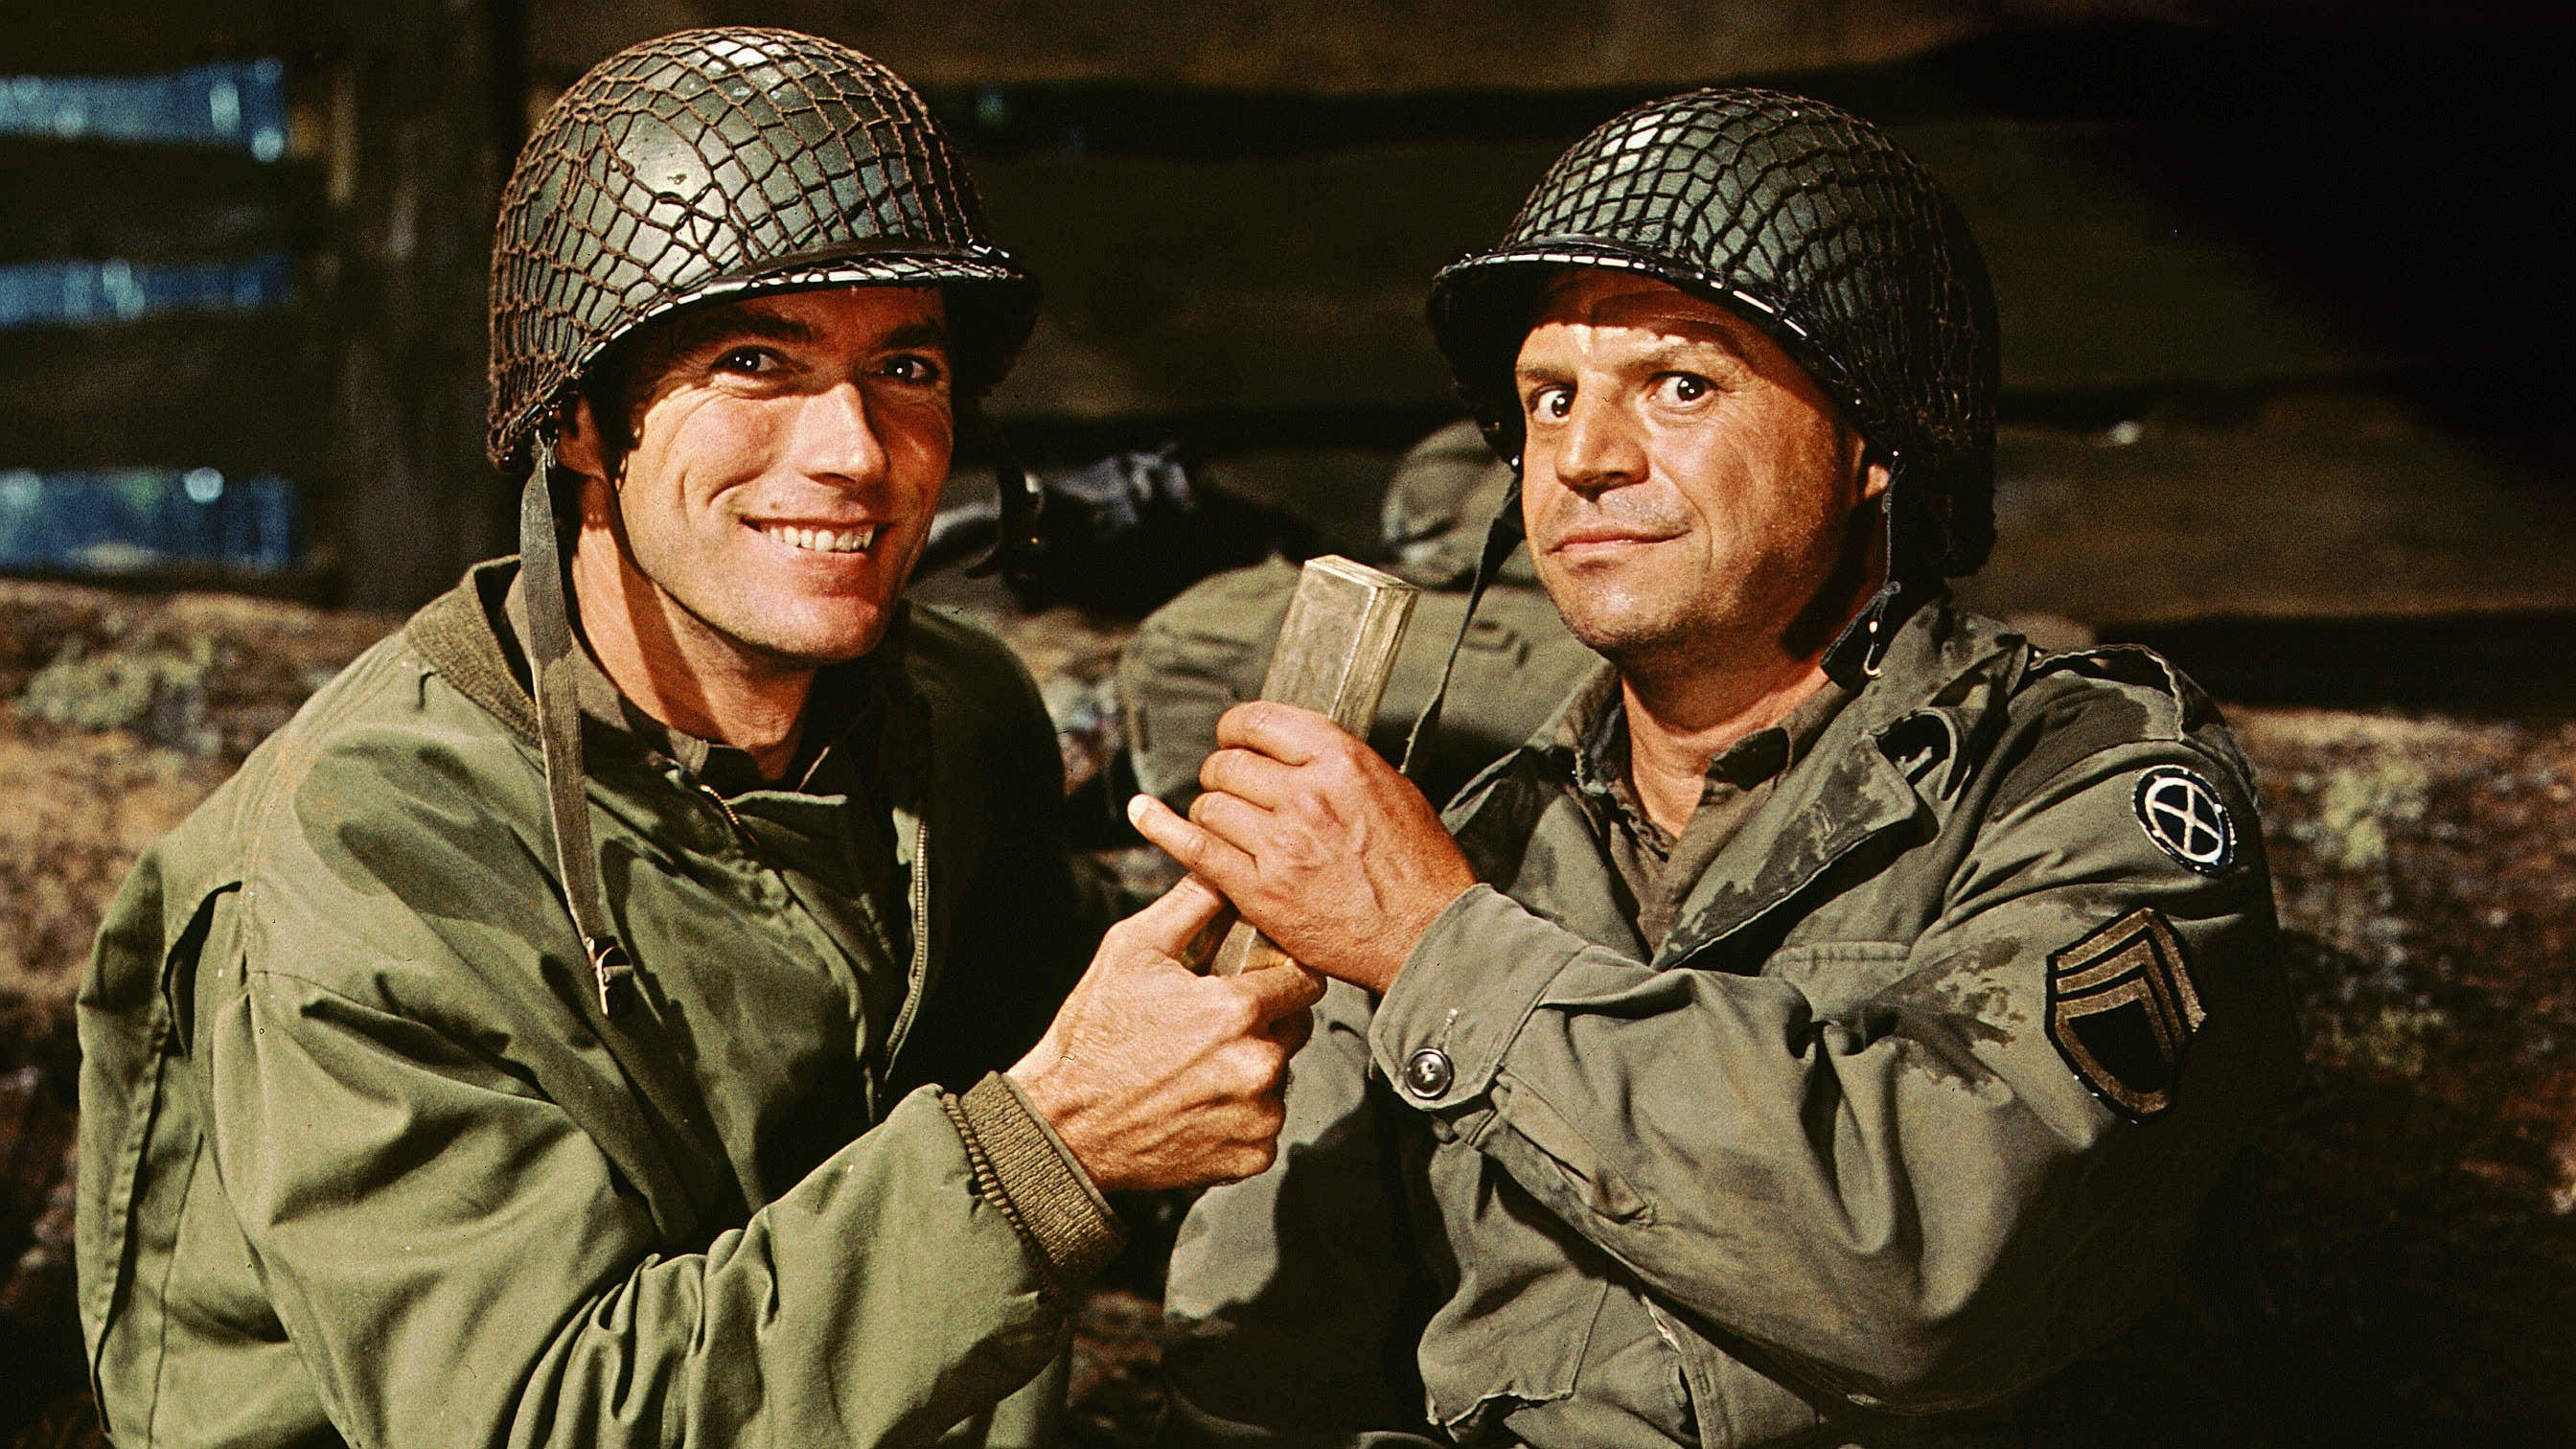 leaders in kelly s heroes Kelly's heroes is a 1970 american war comedy film, directed by brian g hutton, about a group of world war ii american soldiers who go awol to rob a bank behind enemy lines the film stars clint eastwood, telly savalas, don rickles, carroll o'connor, and donald sutherland, with secondary roles played by harry dean.